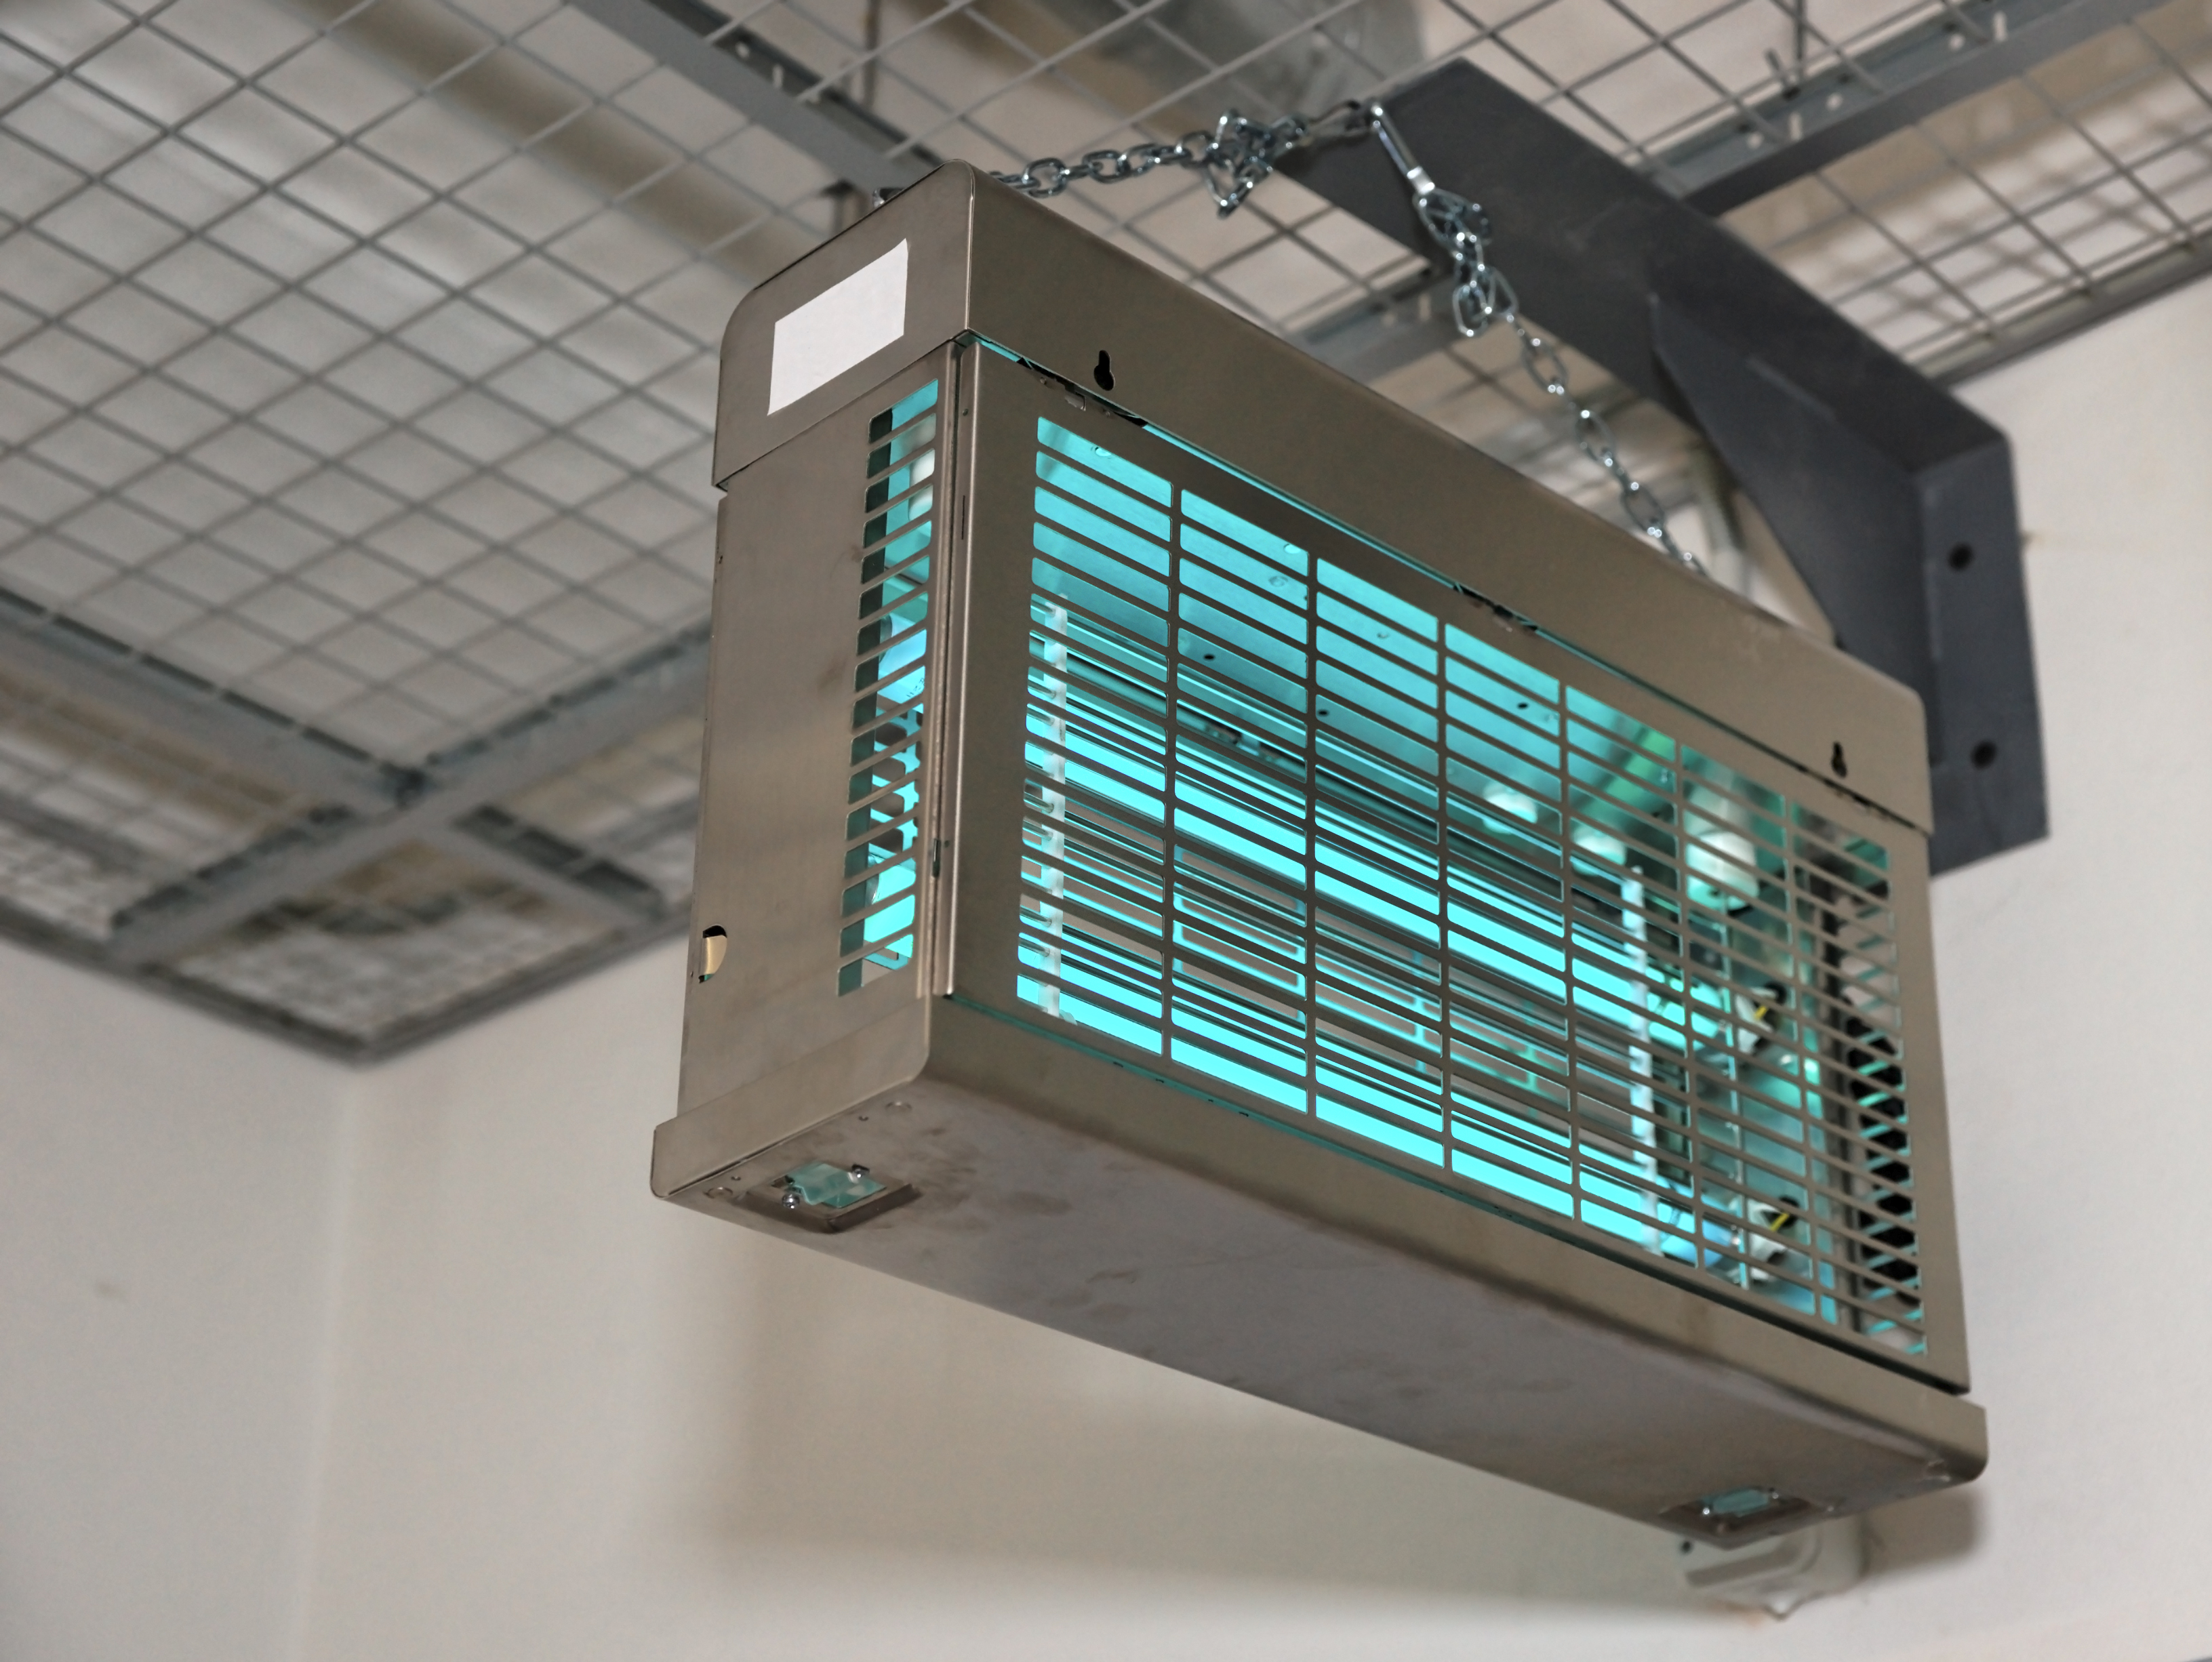 UV Lamp To Clean Air Is An Example Of Innovative UV Sanitizing Equipment For Commercial Buildings